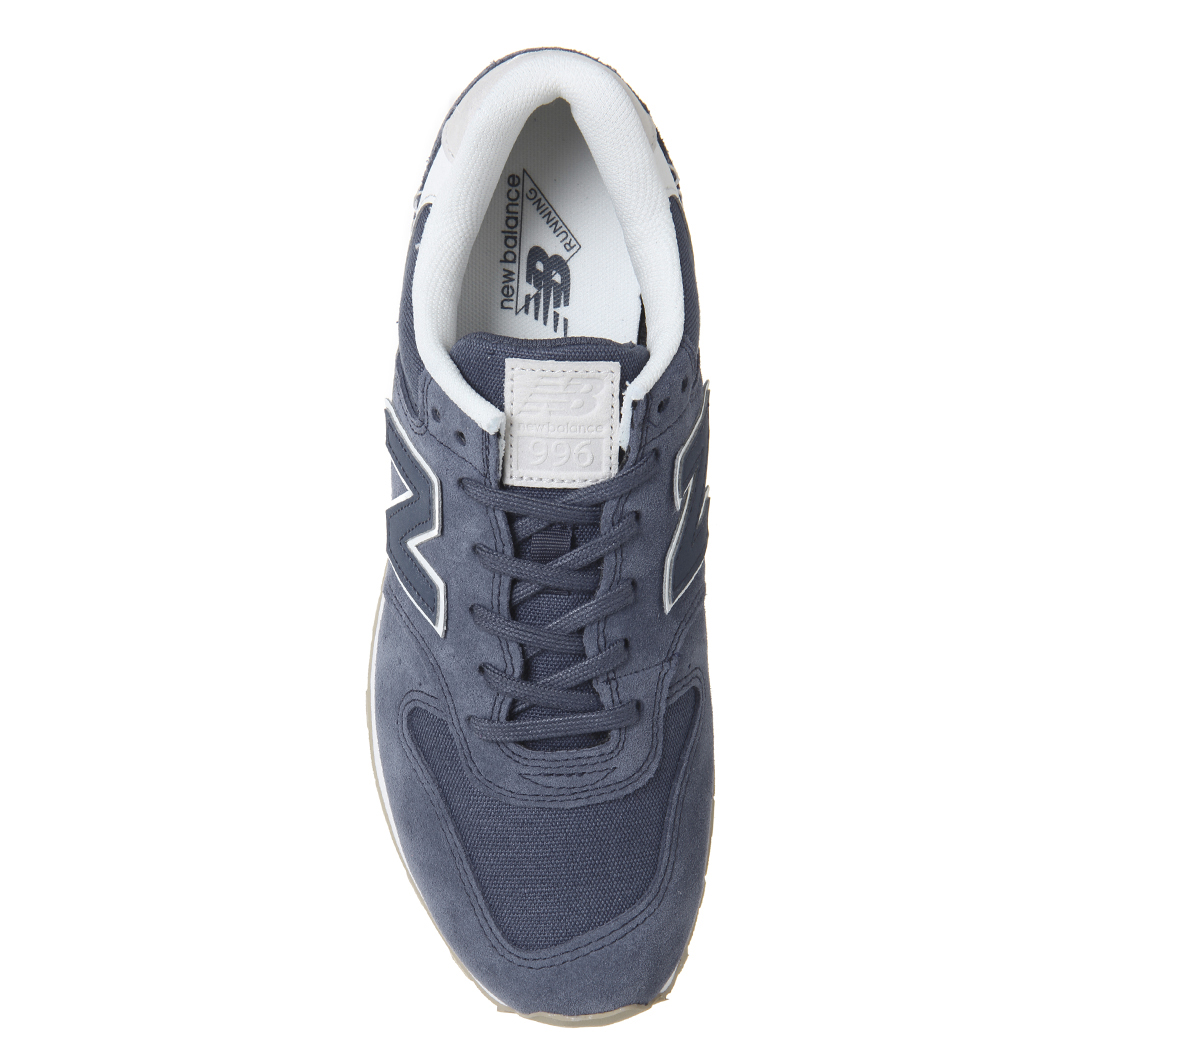 Womens New Balance 996 Trainers Vintage Indigo Trainers Shoes   eBay 87ac9439a4d1